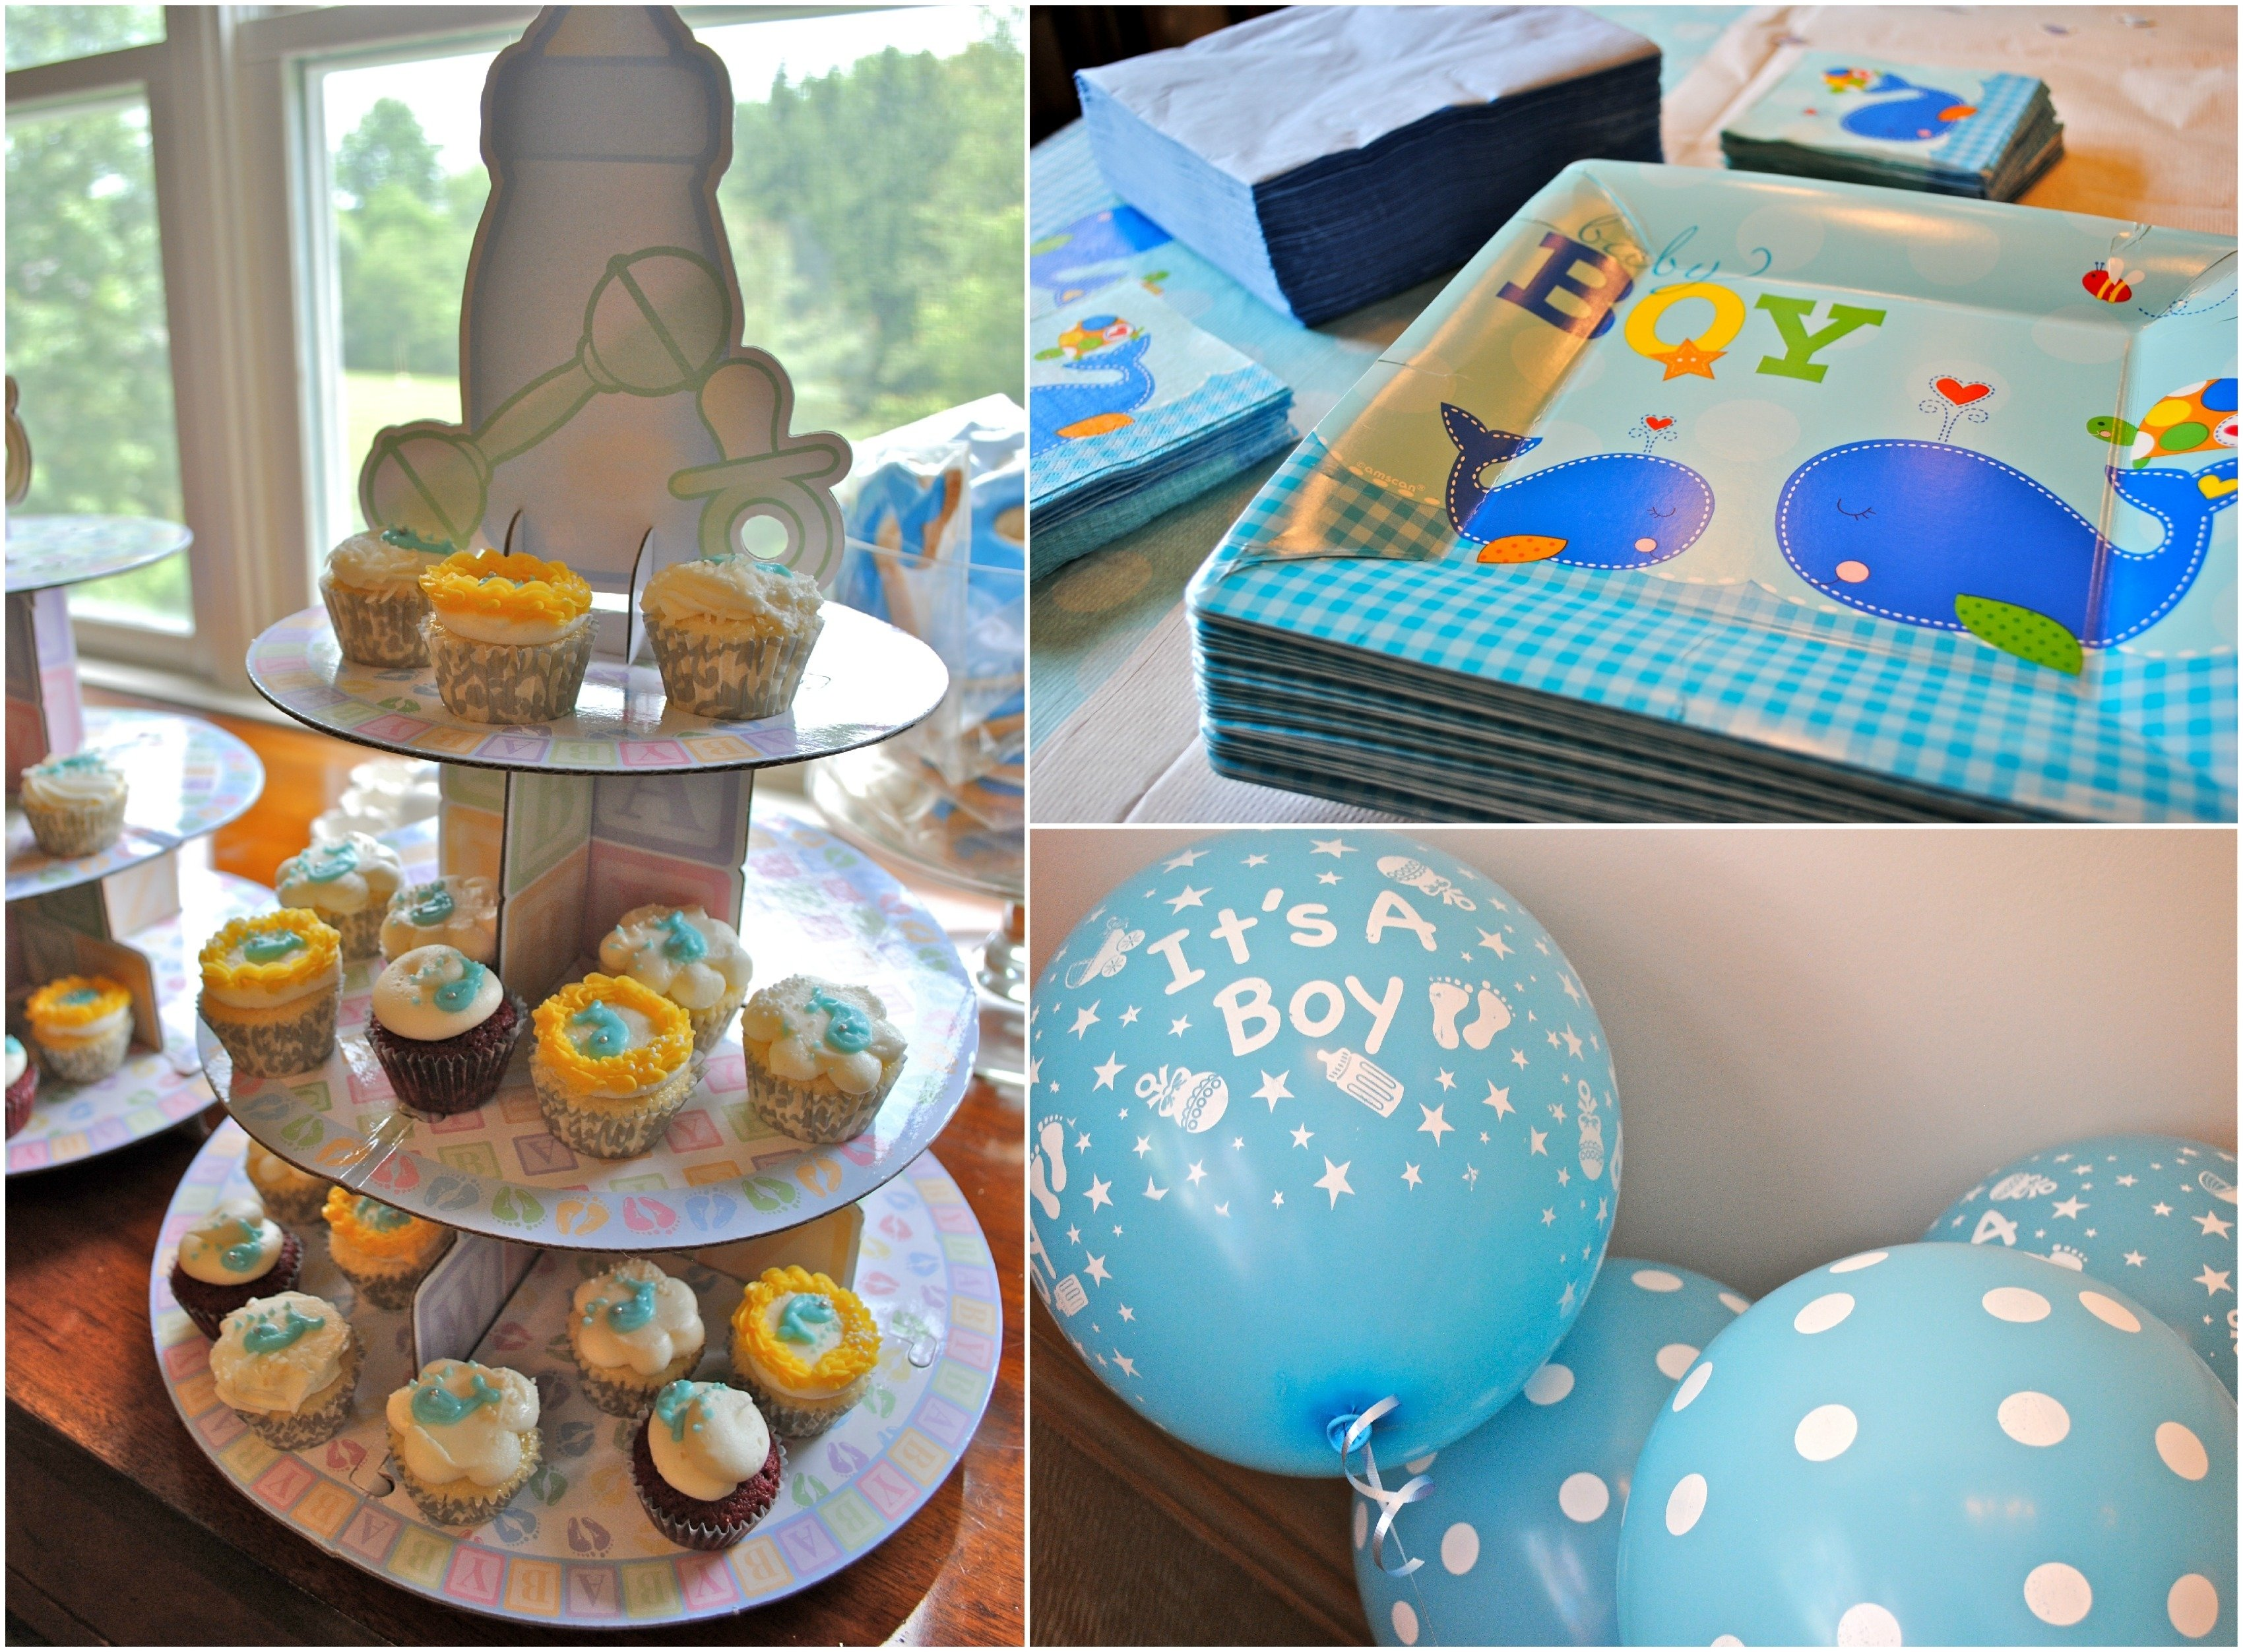 10 Unique Cute Baby Boy Shower Ideas baby shower ideas for girls best decoration girl candy buffet sweet 2020